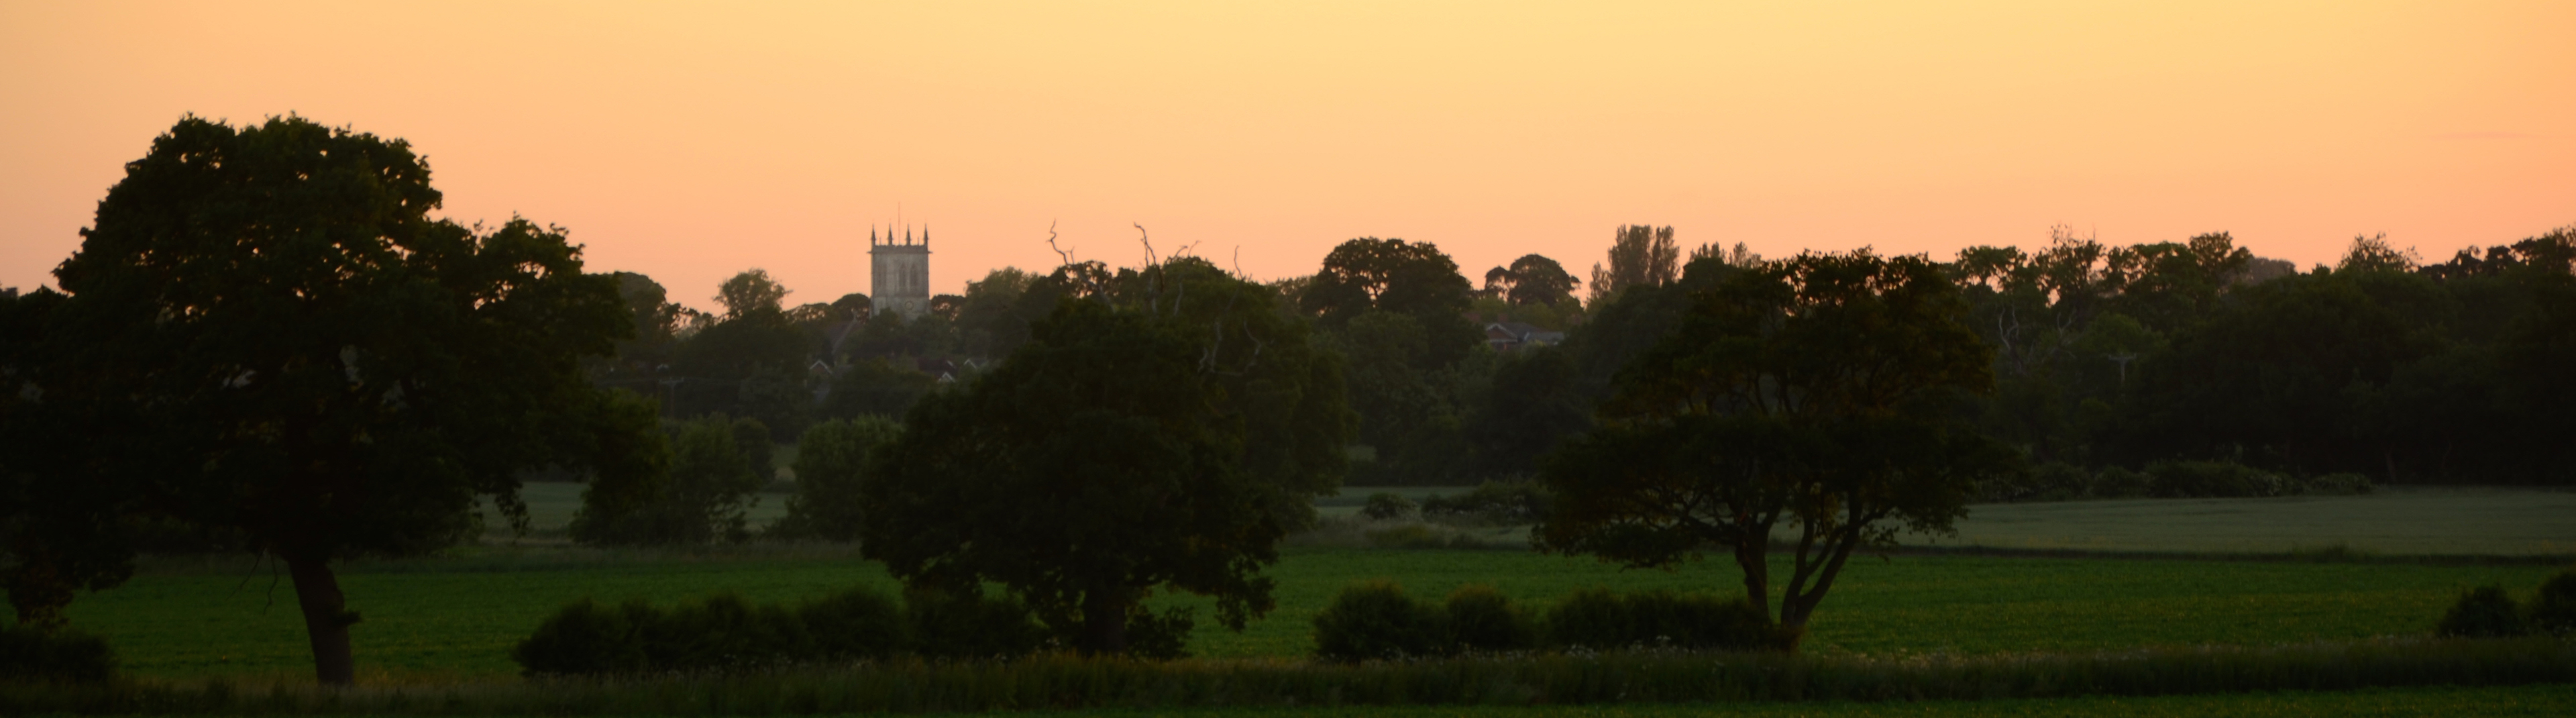 Photograph of Escrick at dusk showing St Helen's church